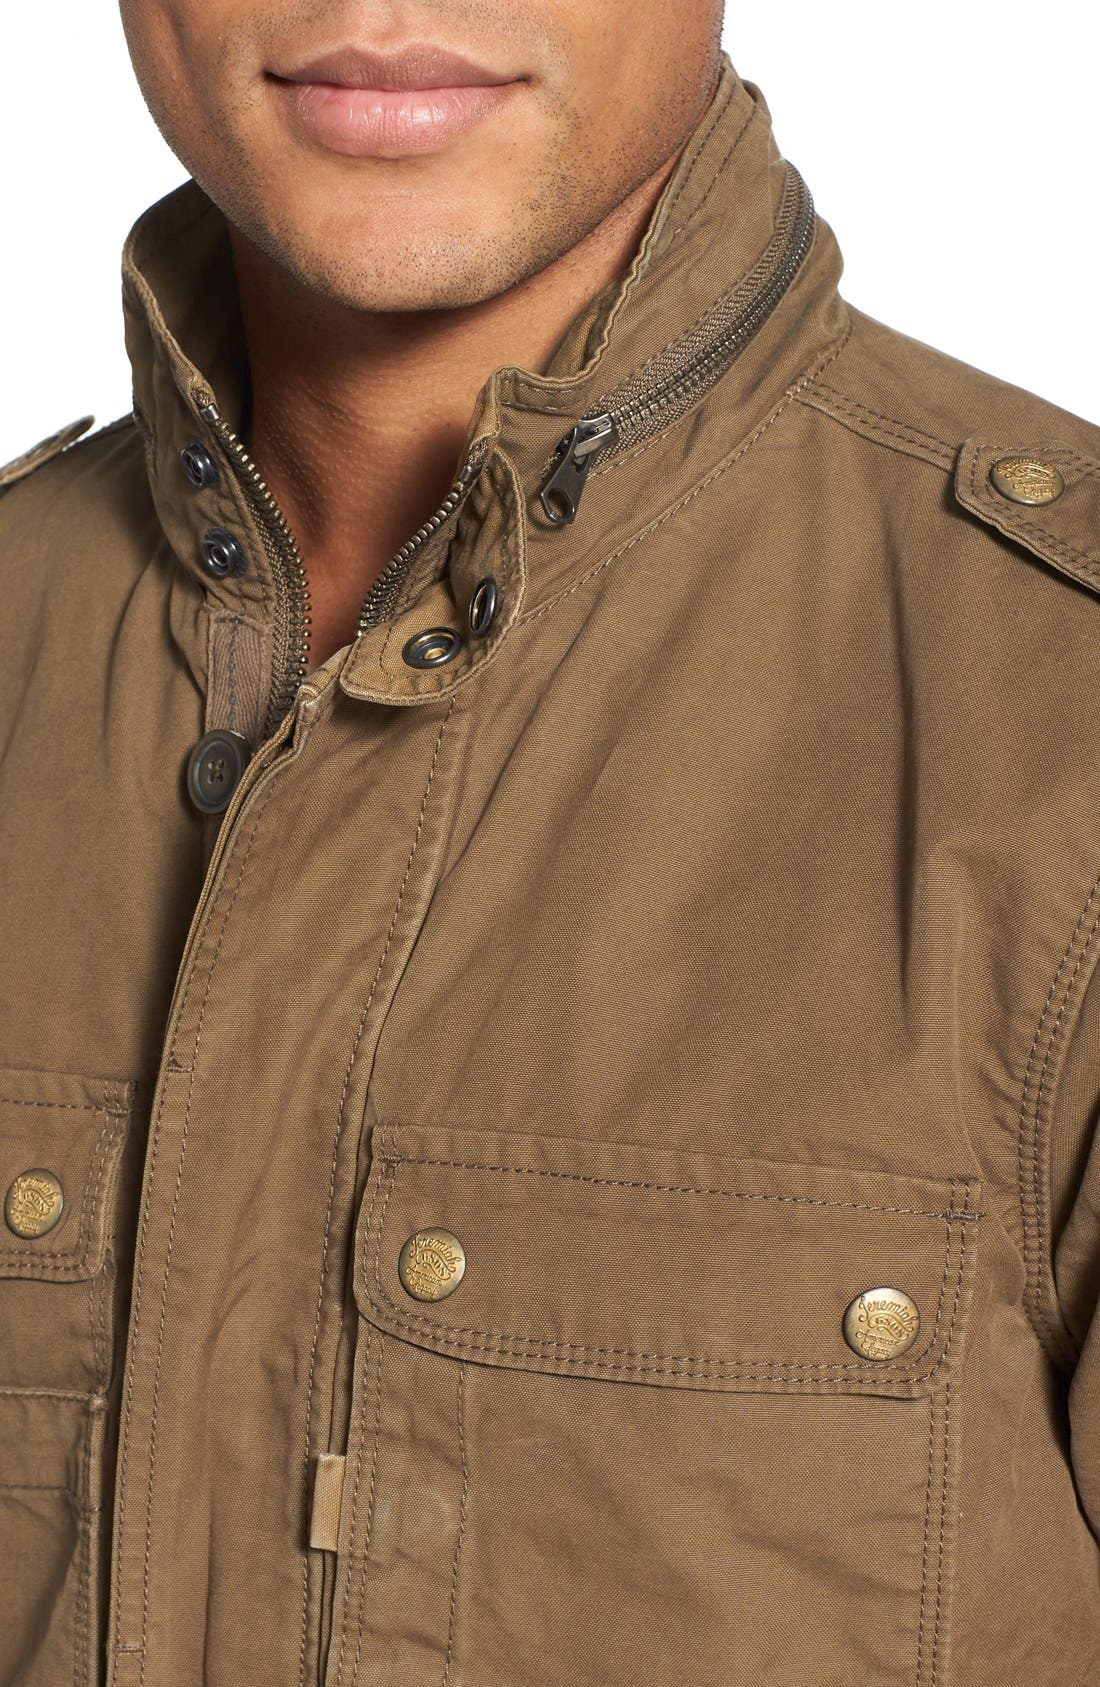 Alternate Image 4  - Jeremiah 'Paxton' Military Jacket with Stowaway Hood